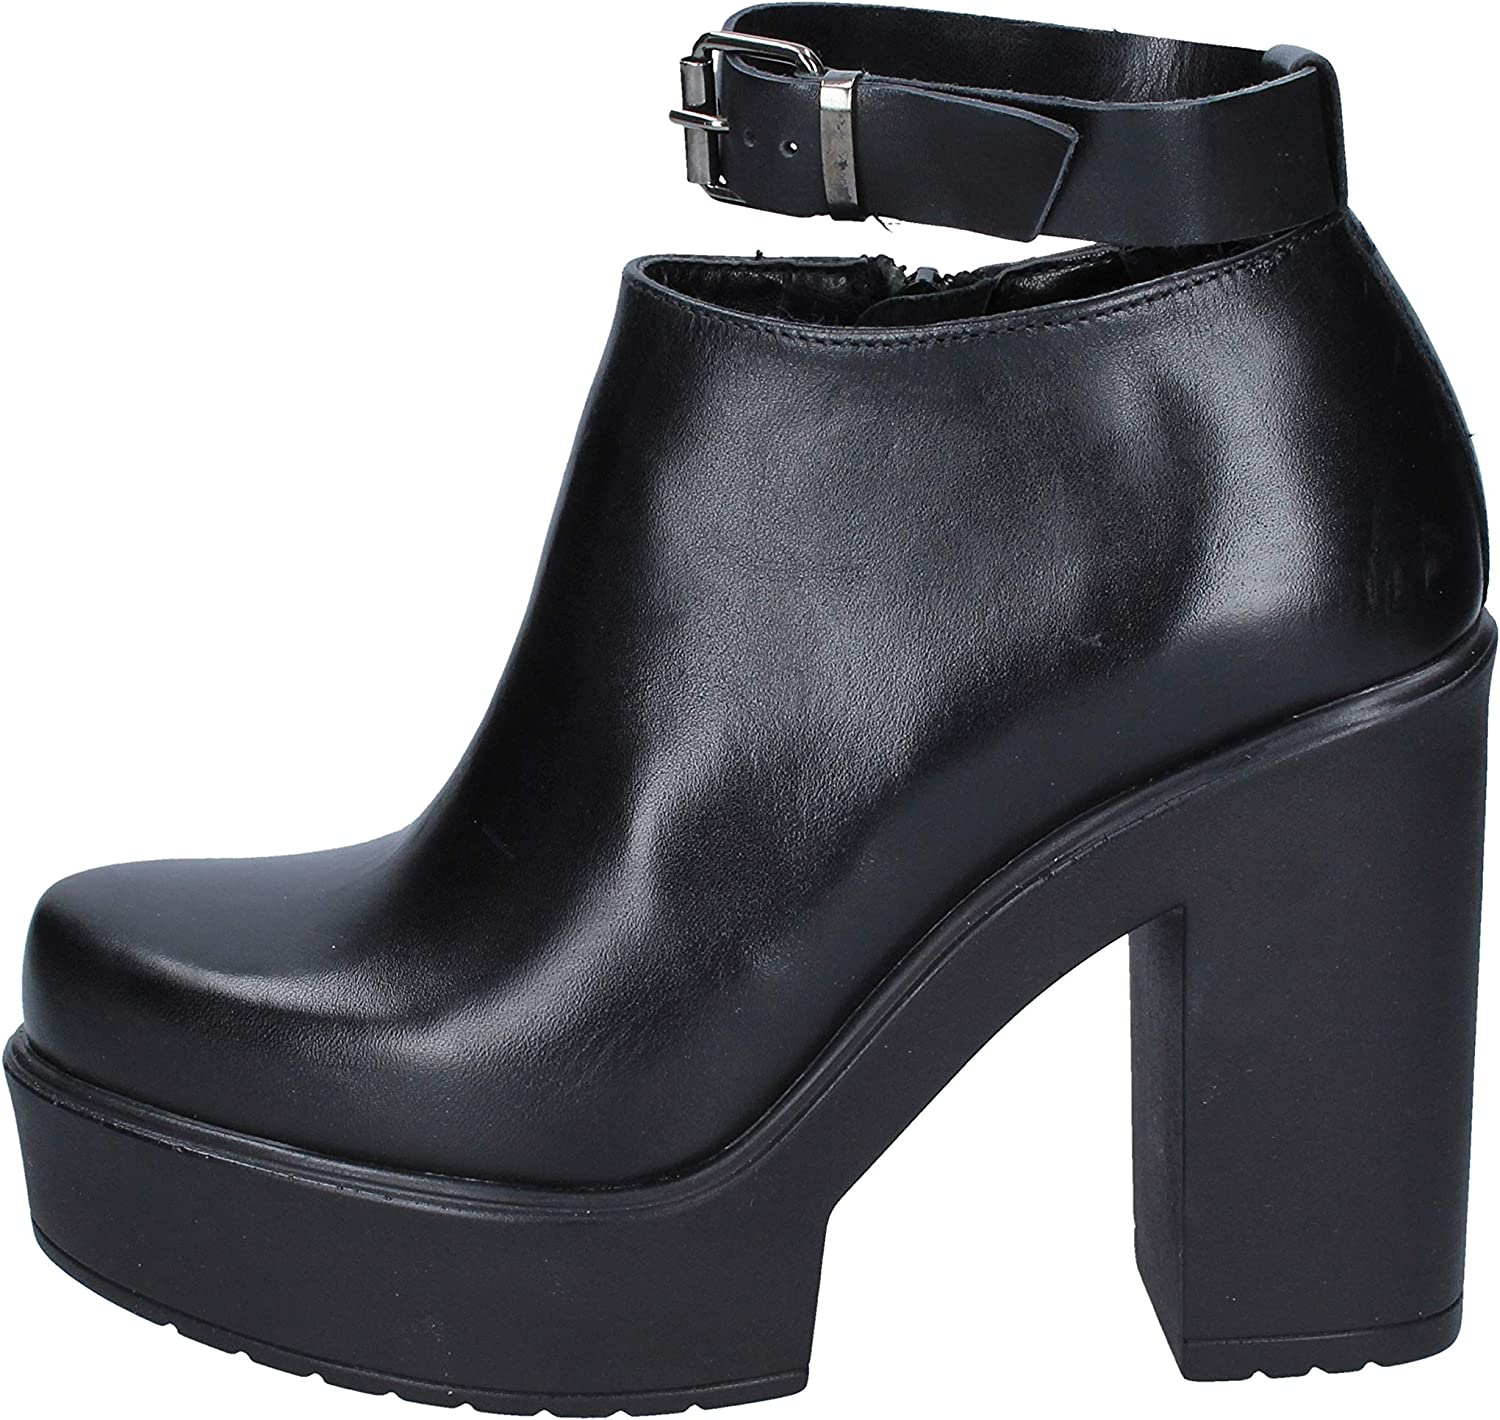 CULT Boots Womens Leather Black